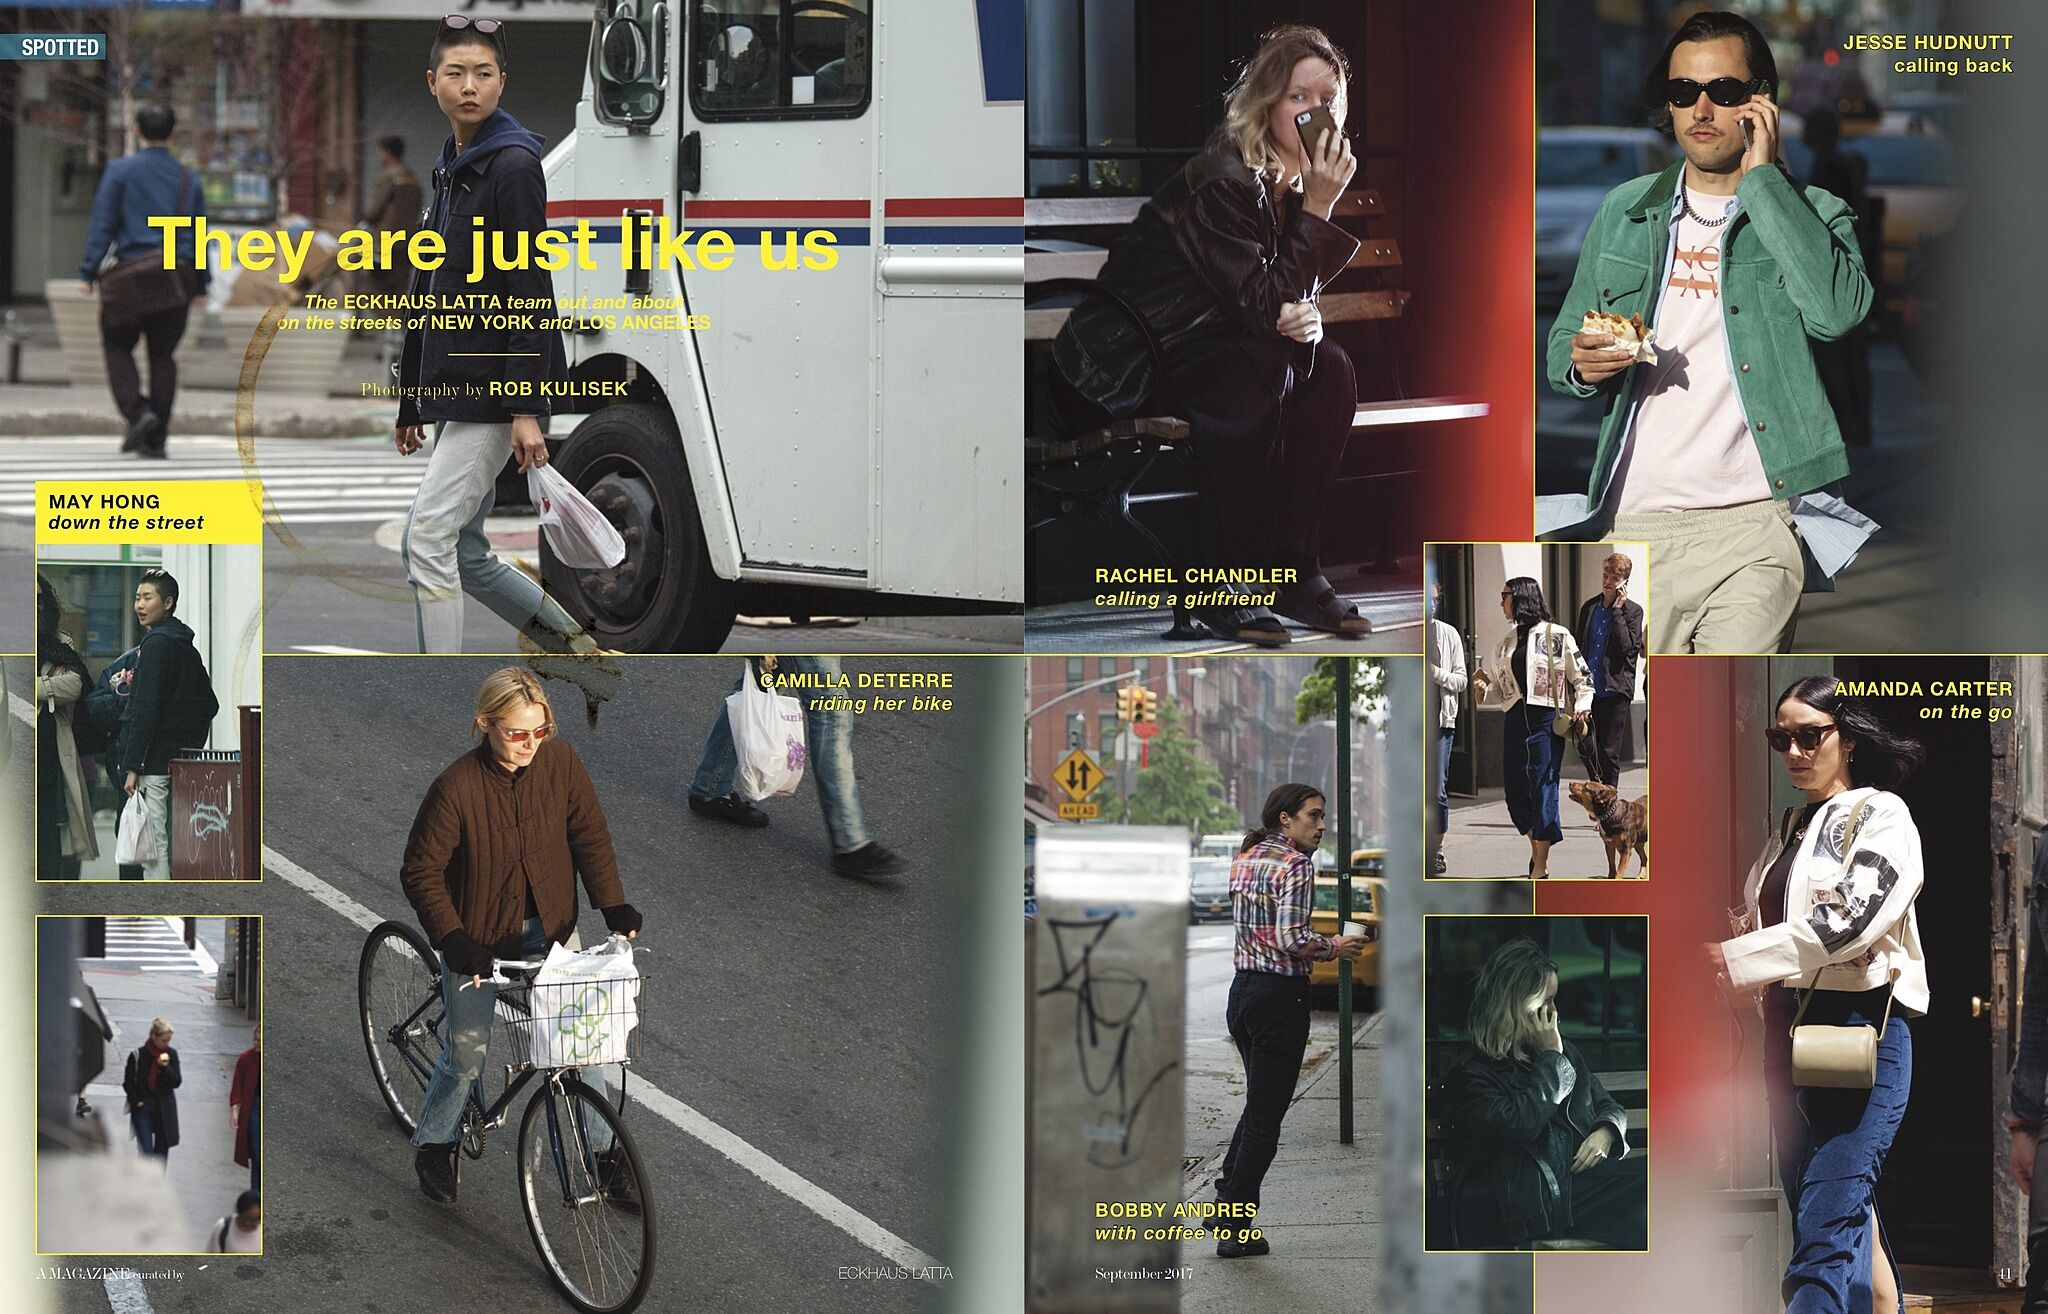 A magazine spread featuring the Eckhaus Latta team.